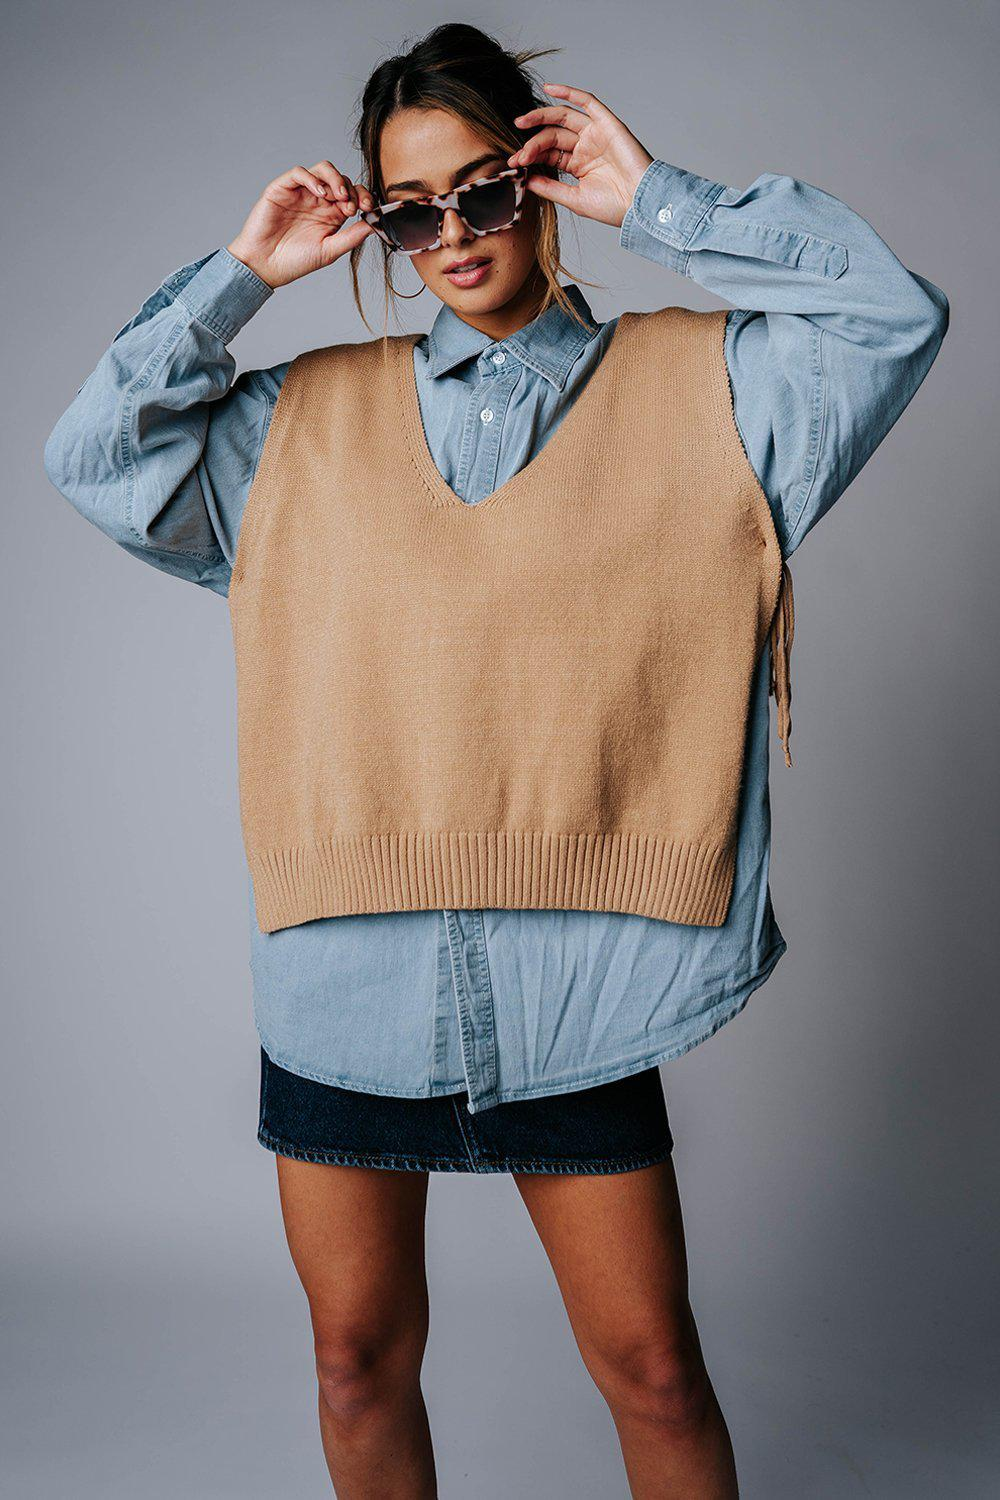 best_seller, Don't Play Oversized Denim Top - FINAL SALE, Top, women's clothing, dresses, skirts, coats, jackets, shoes, boots, tops, tee shirts, jeans, free people, levi's, rollas, jumpsuits, bottoms, tops, sweaters, pullovers, pants, shorts, sweats,.